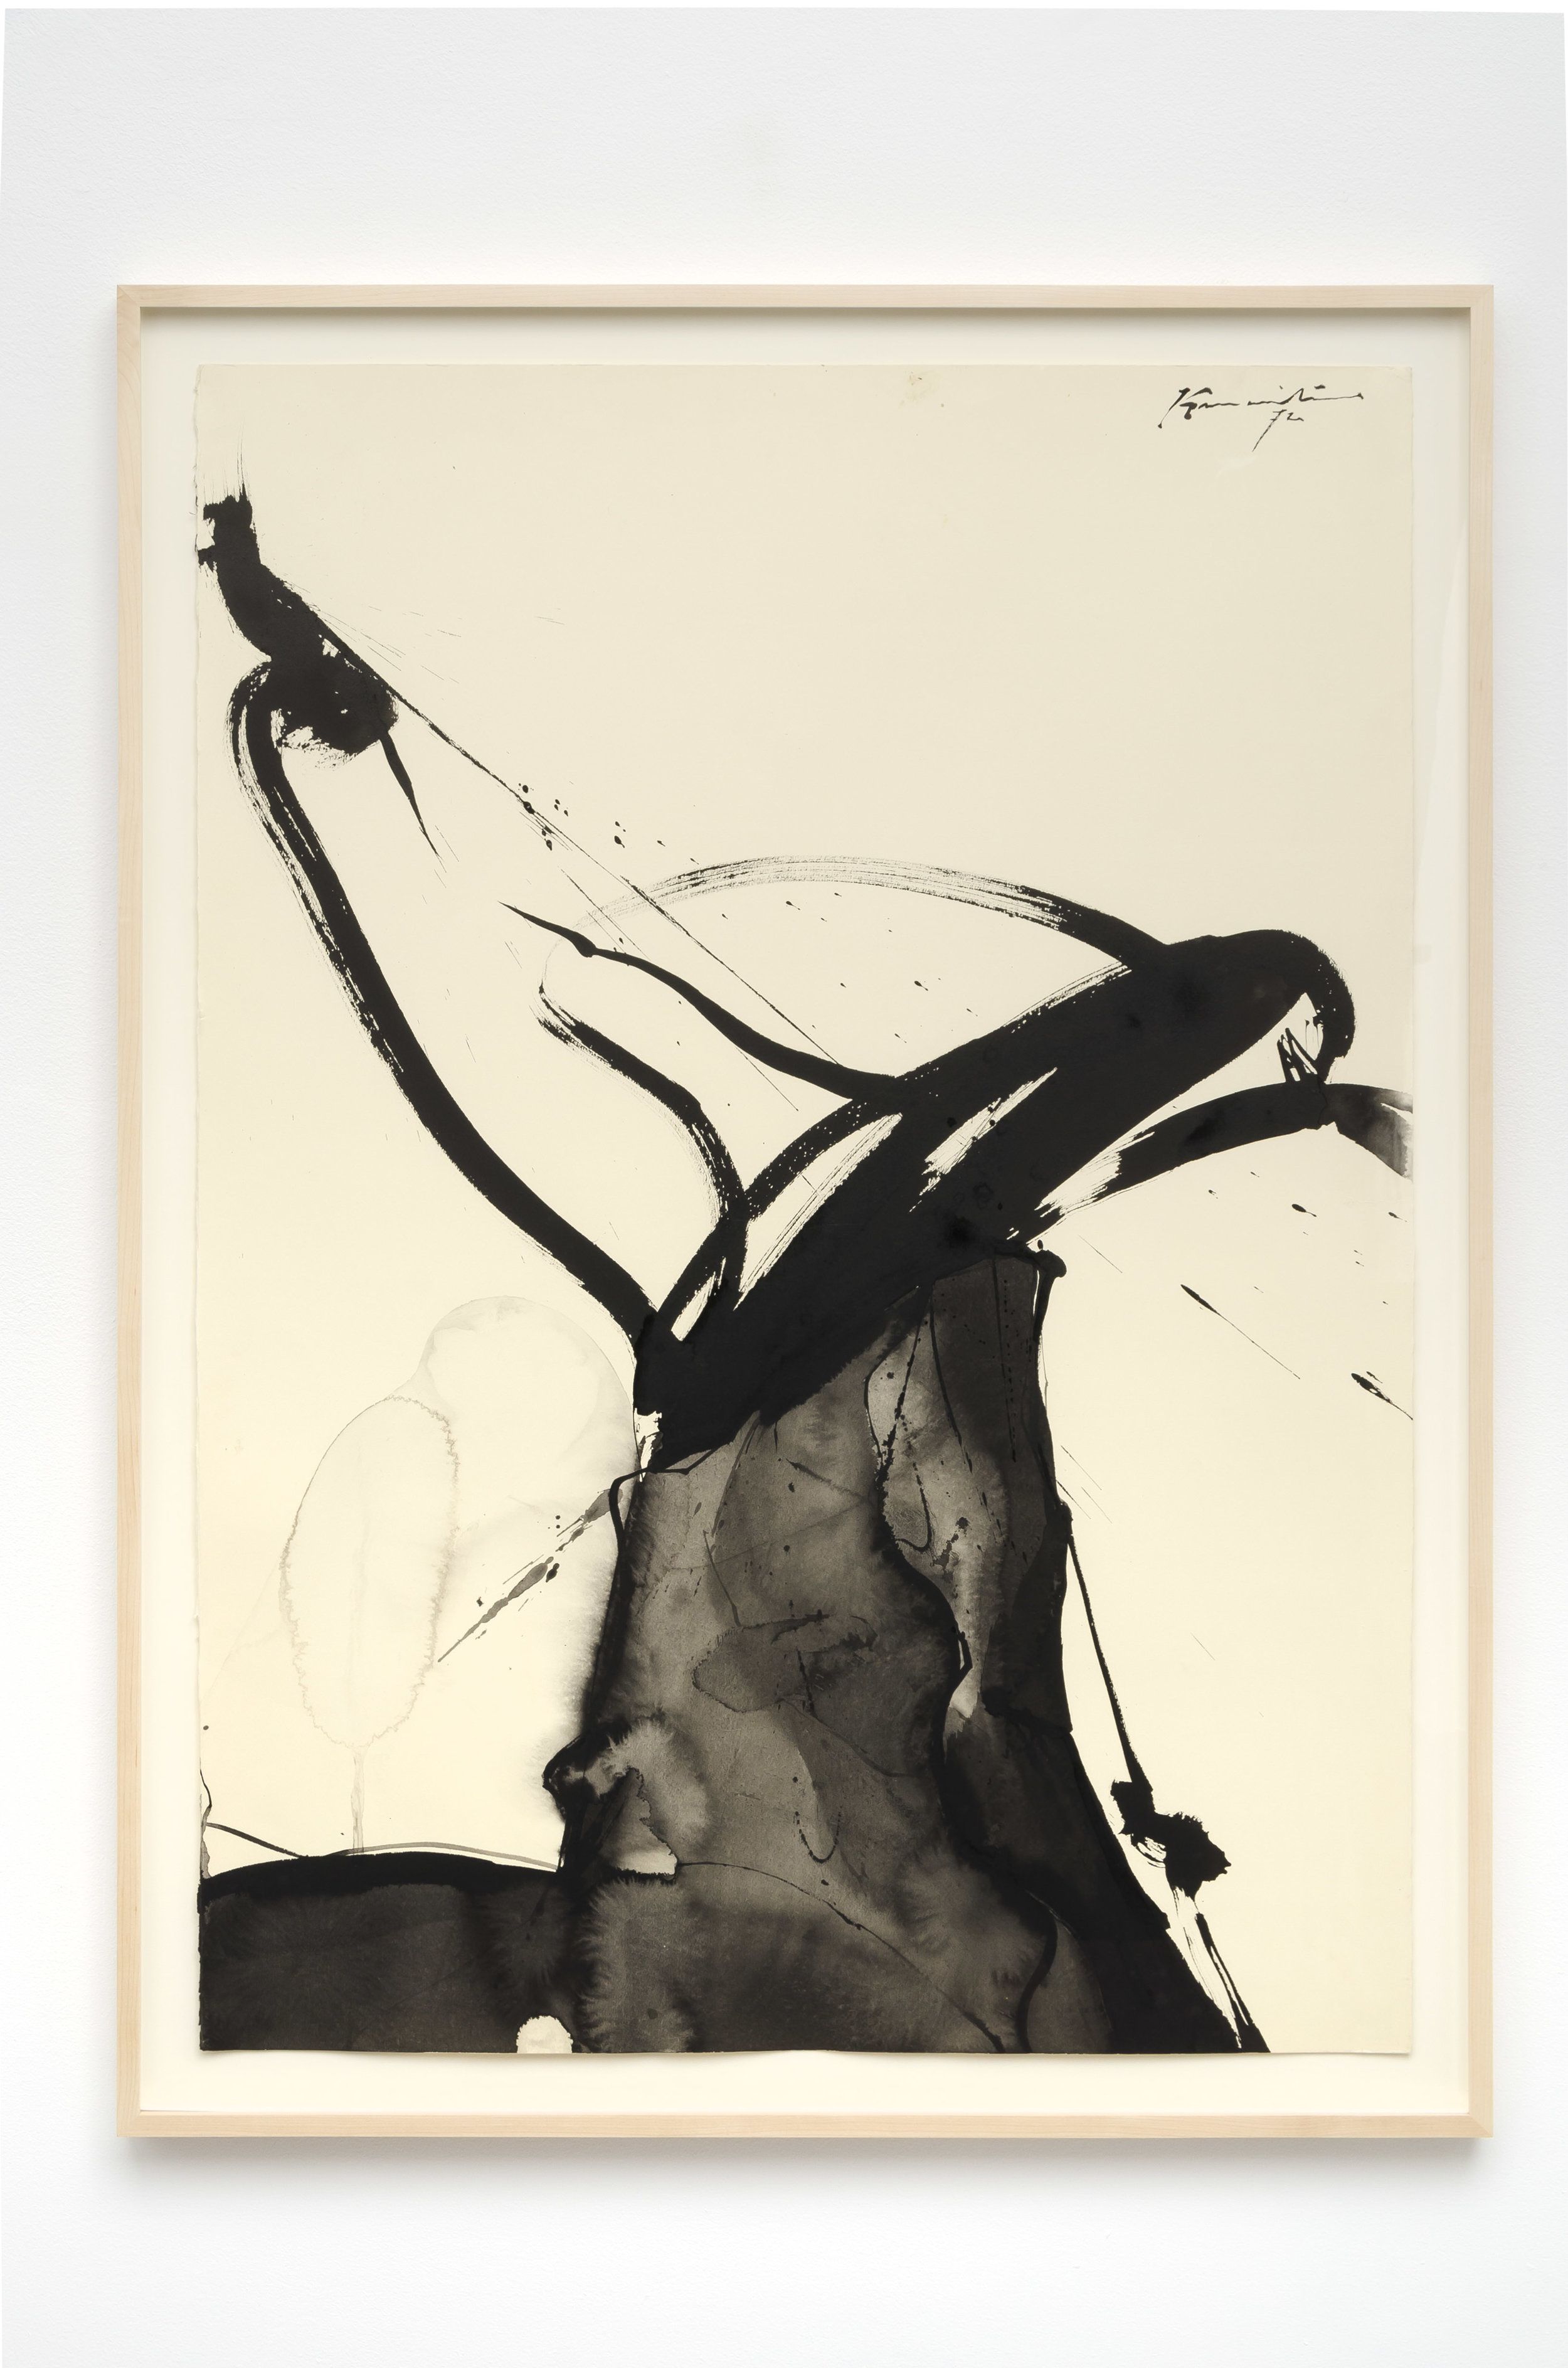 Untitled , 1972 sumi ink on paper 43 x 31 inches; 109.2 x 78.7 centimeters